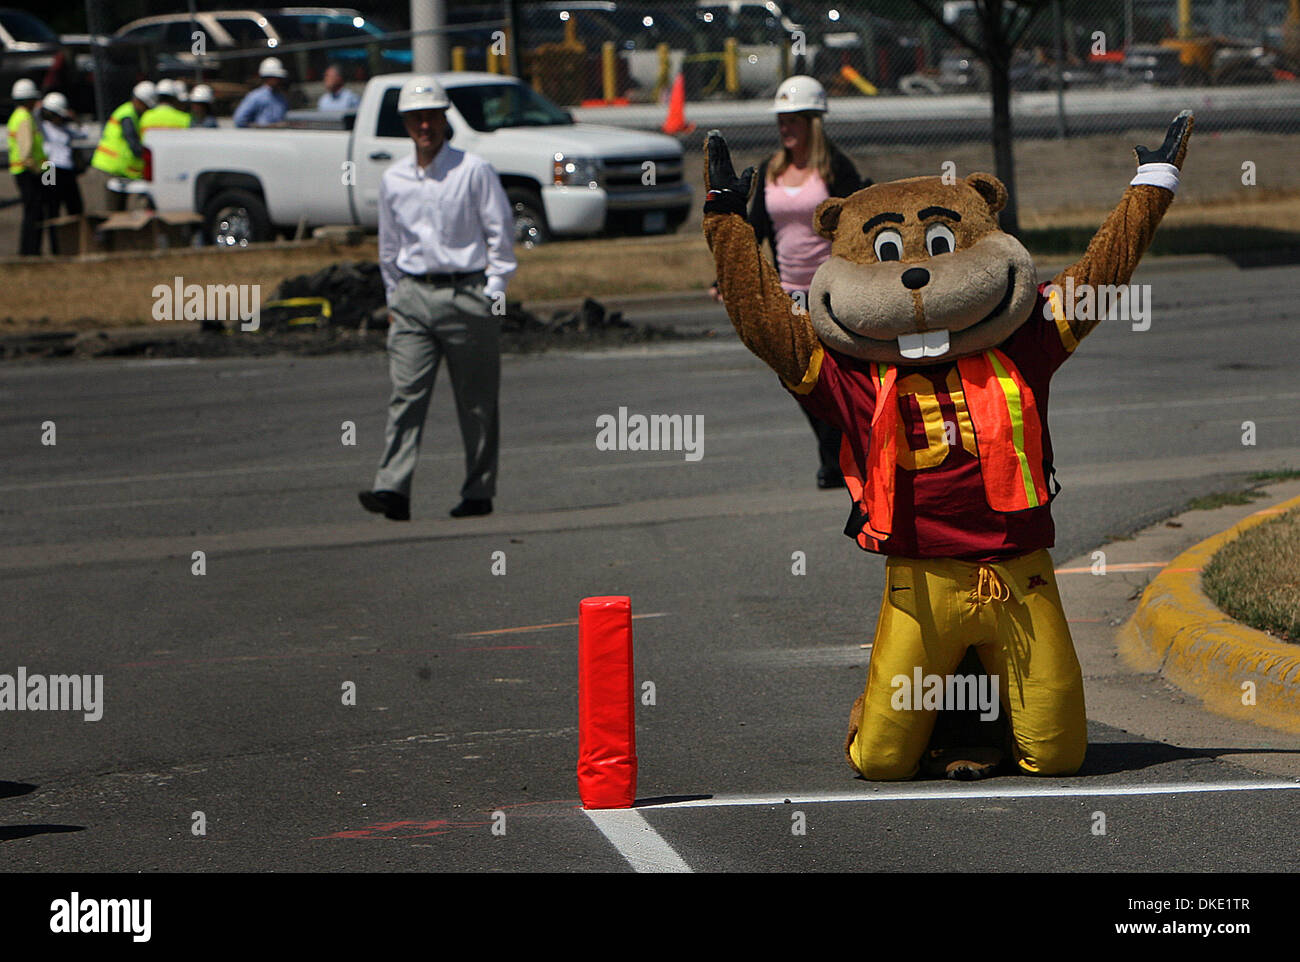 July 11th, 2007 - Minneapolis, MN, USA - University of Minnesota mascot Godly Gopher plays in what will be an end zone in the new stadium at the on-campus construction site. Officials from the U of M, construction companies and others gathered to unveil the new TCF Bank Stadium logo and to kick off the stadium construction phase.  (Credit Image: © Jim Gehrz/Minneapolis Star Tribune - Stock Image